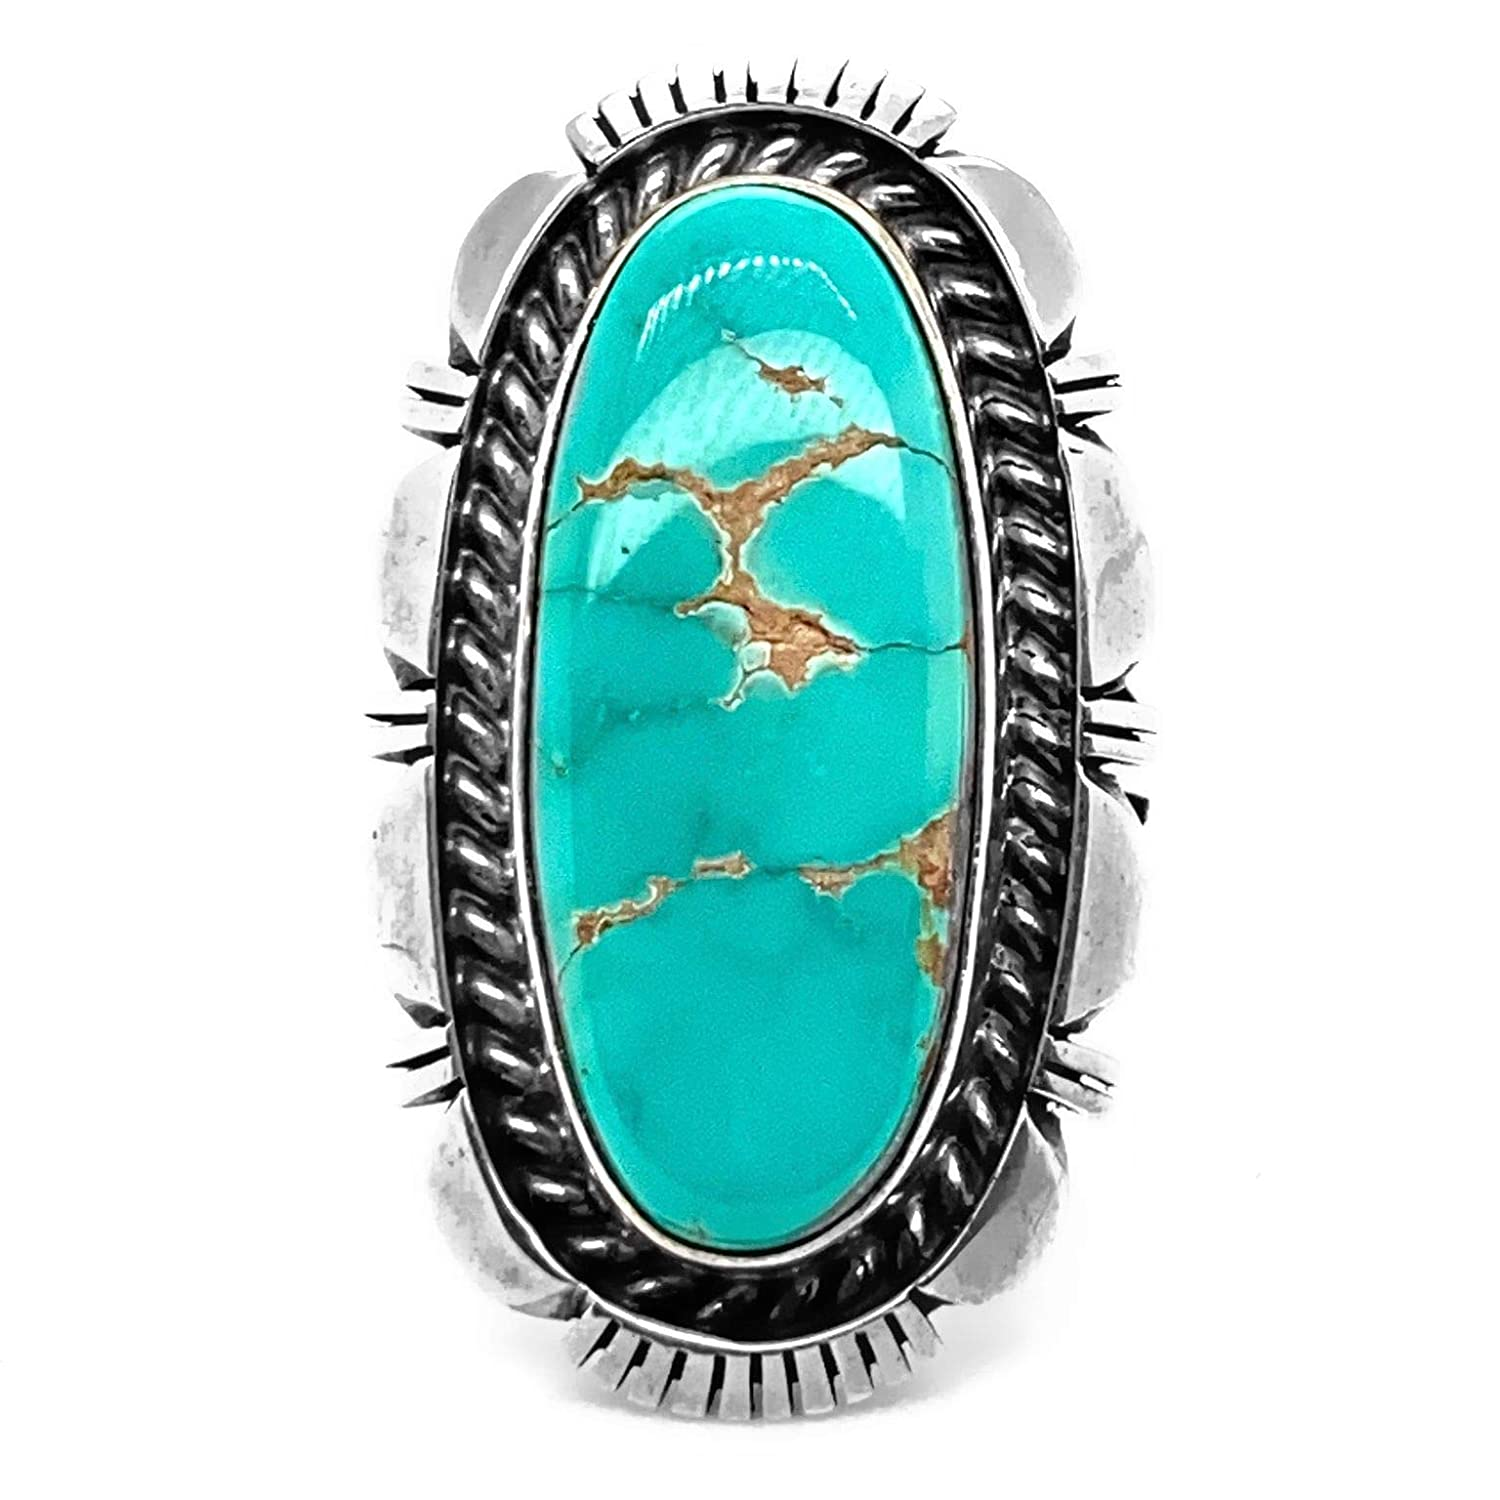 Genuine Royston Turquoise Statement Ring, Size 8.5, Sterling Silver, Authentic Navajo Native American USA Handmade, Artist Signed, Nickel Free, Southwest Jewelry